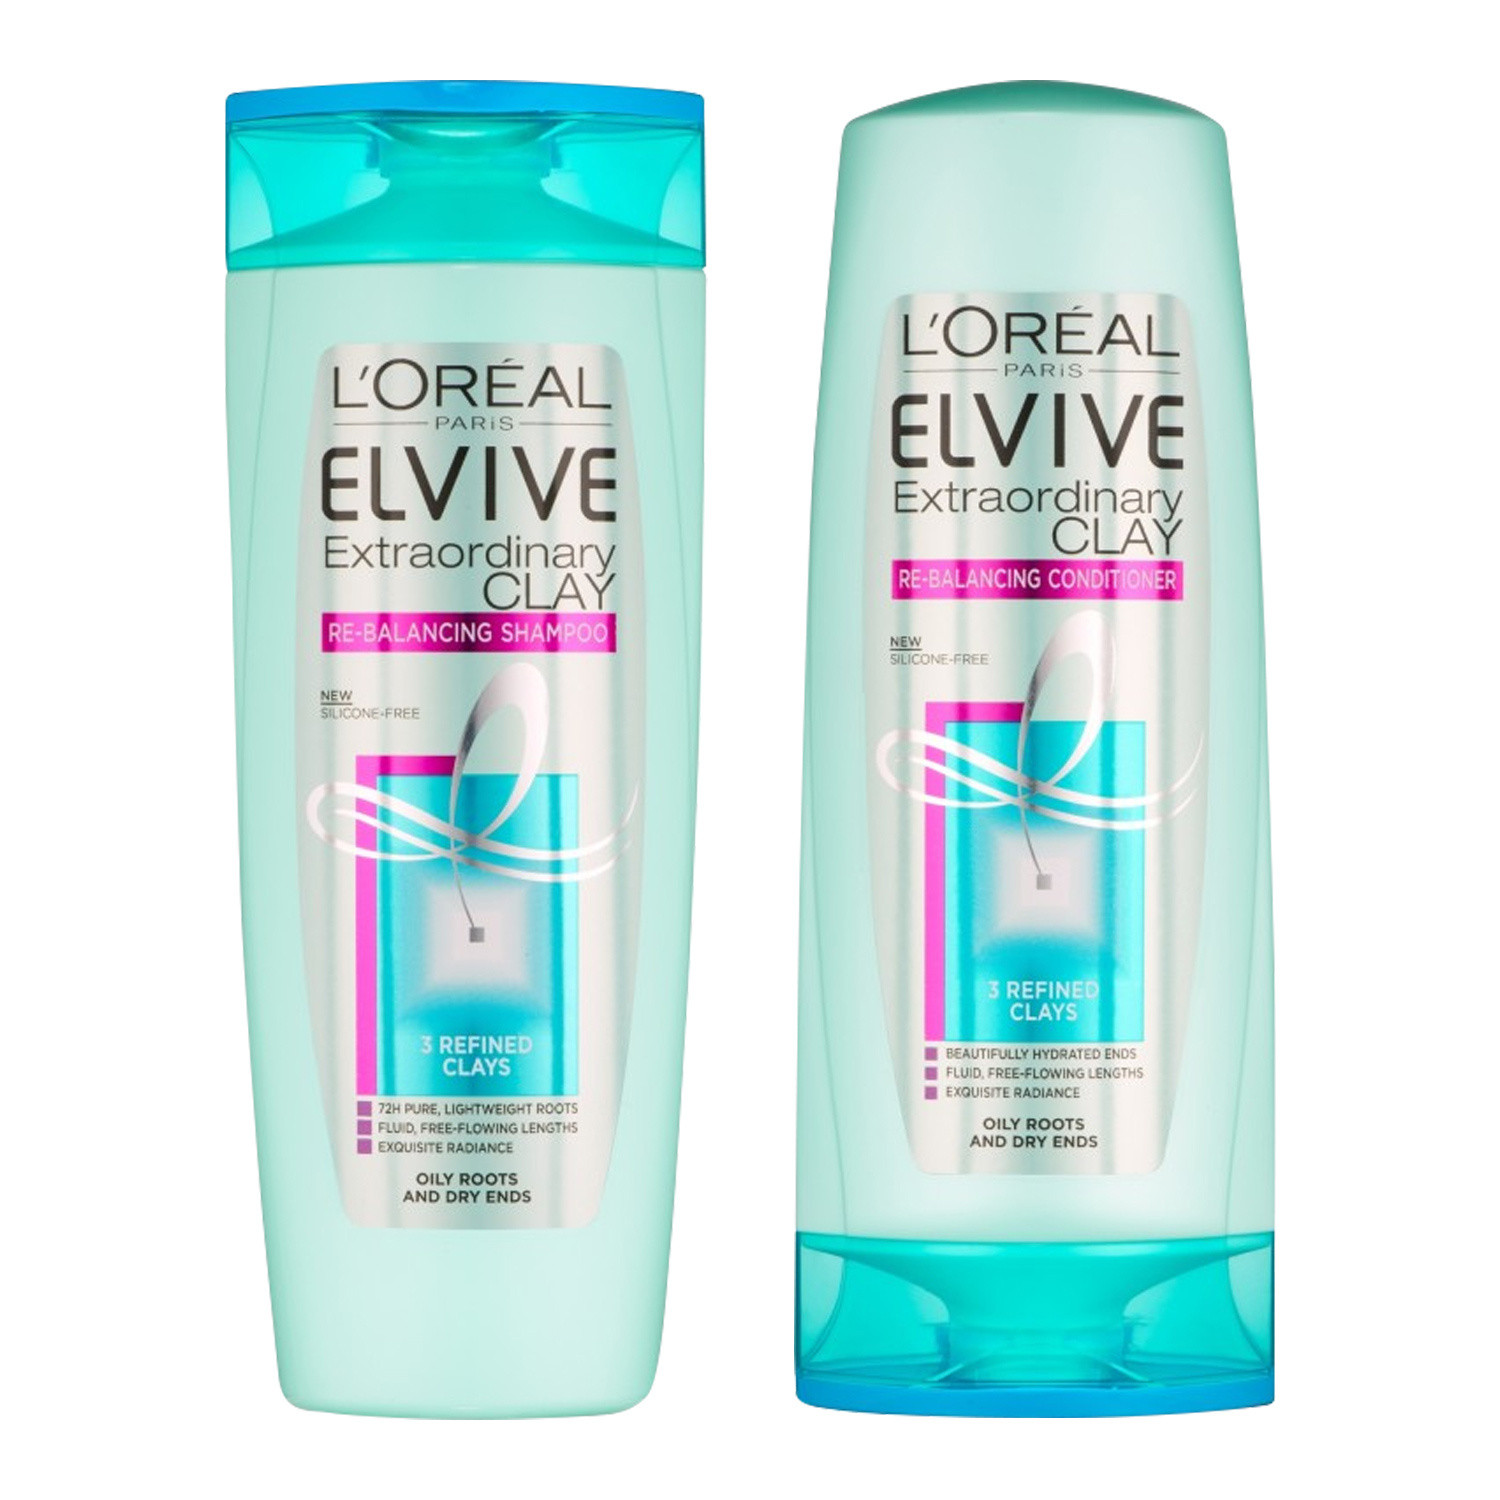 L'Oreal Elvive Extraordinary Clay Haircare Duo